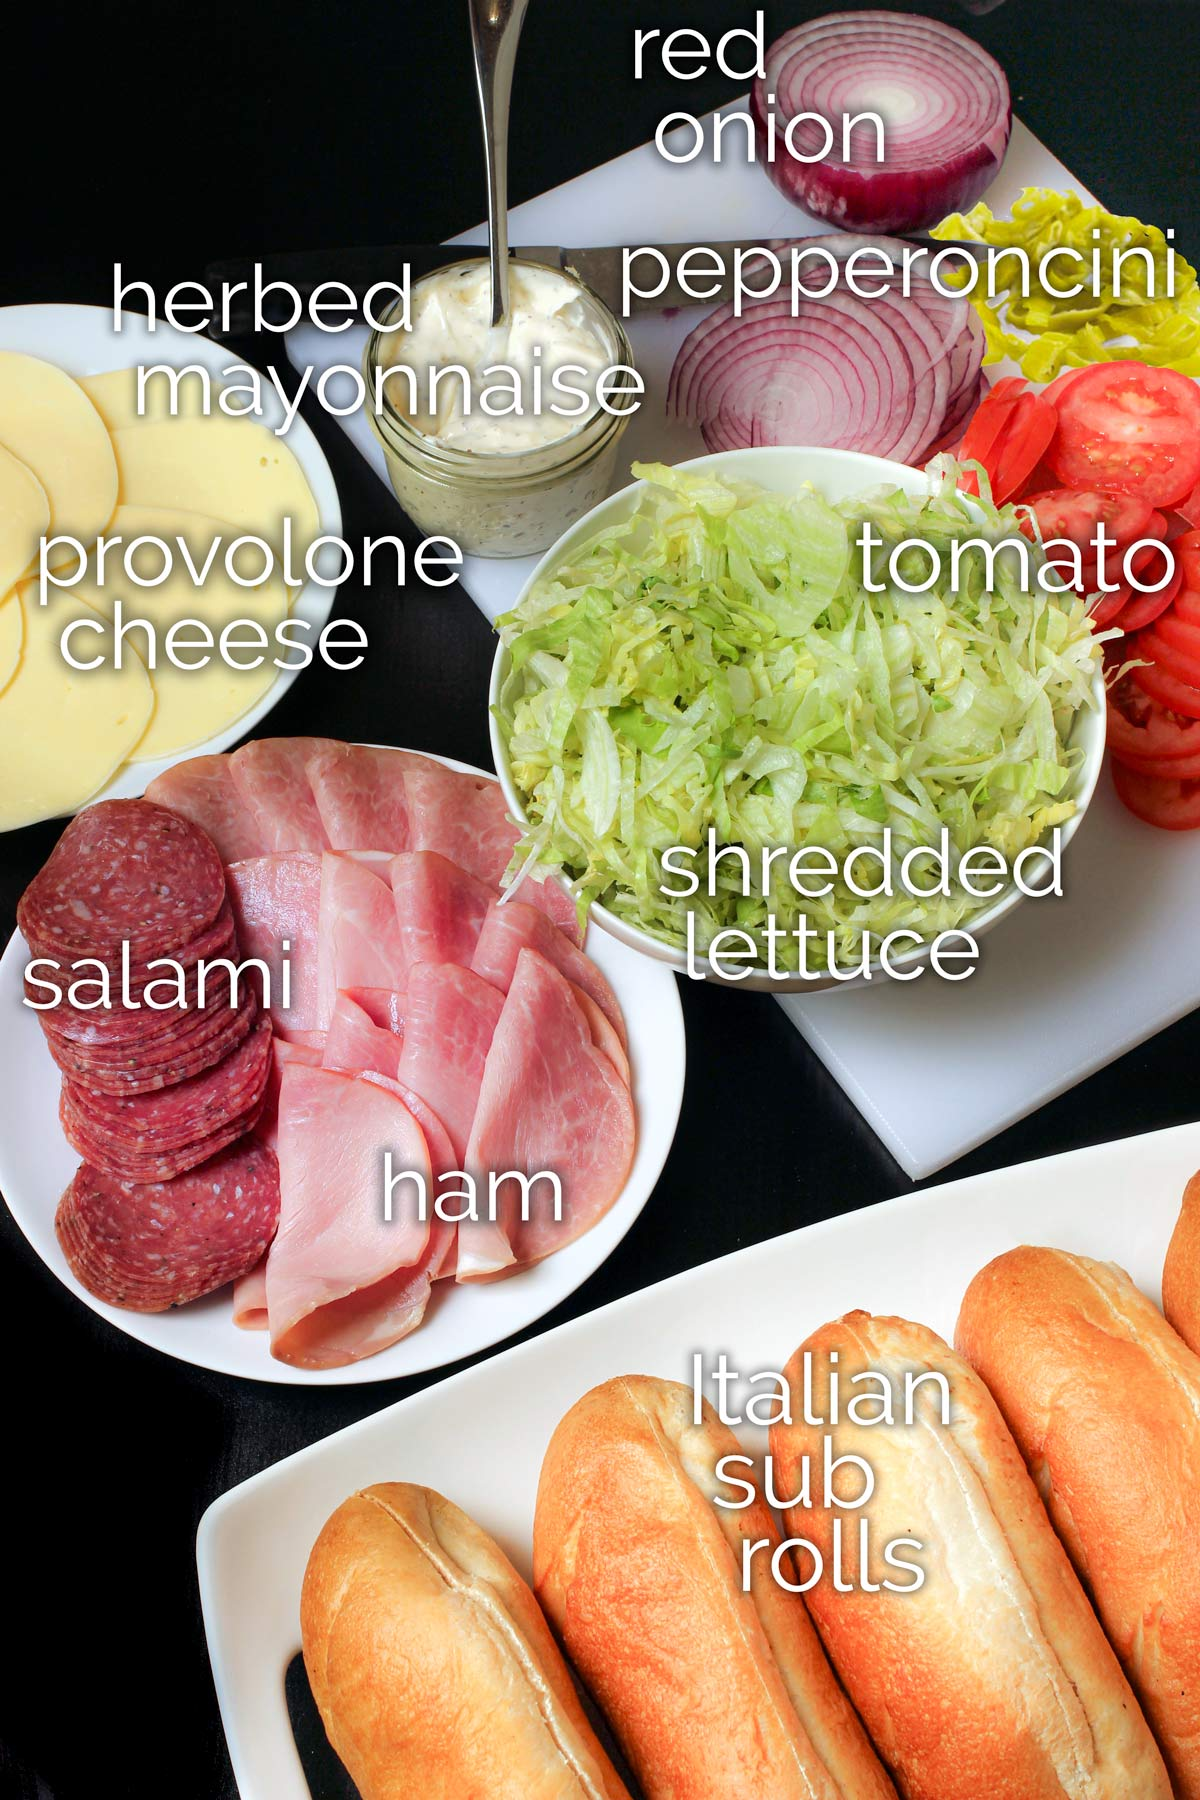 Italian cold cuts with plate of cheese and platter of vegetables next to sub rolls.